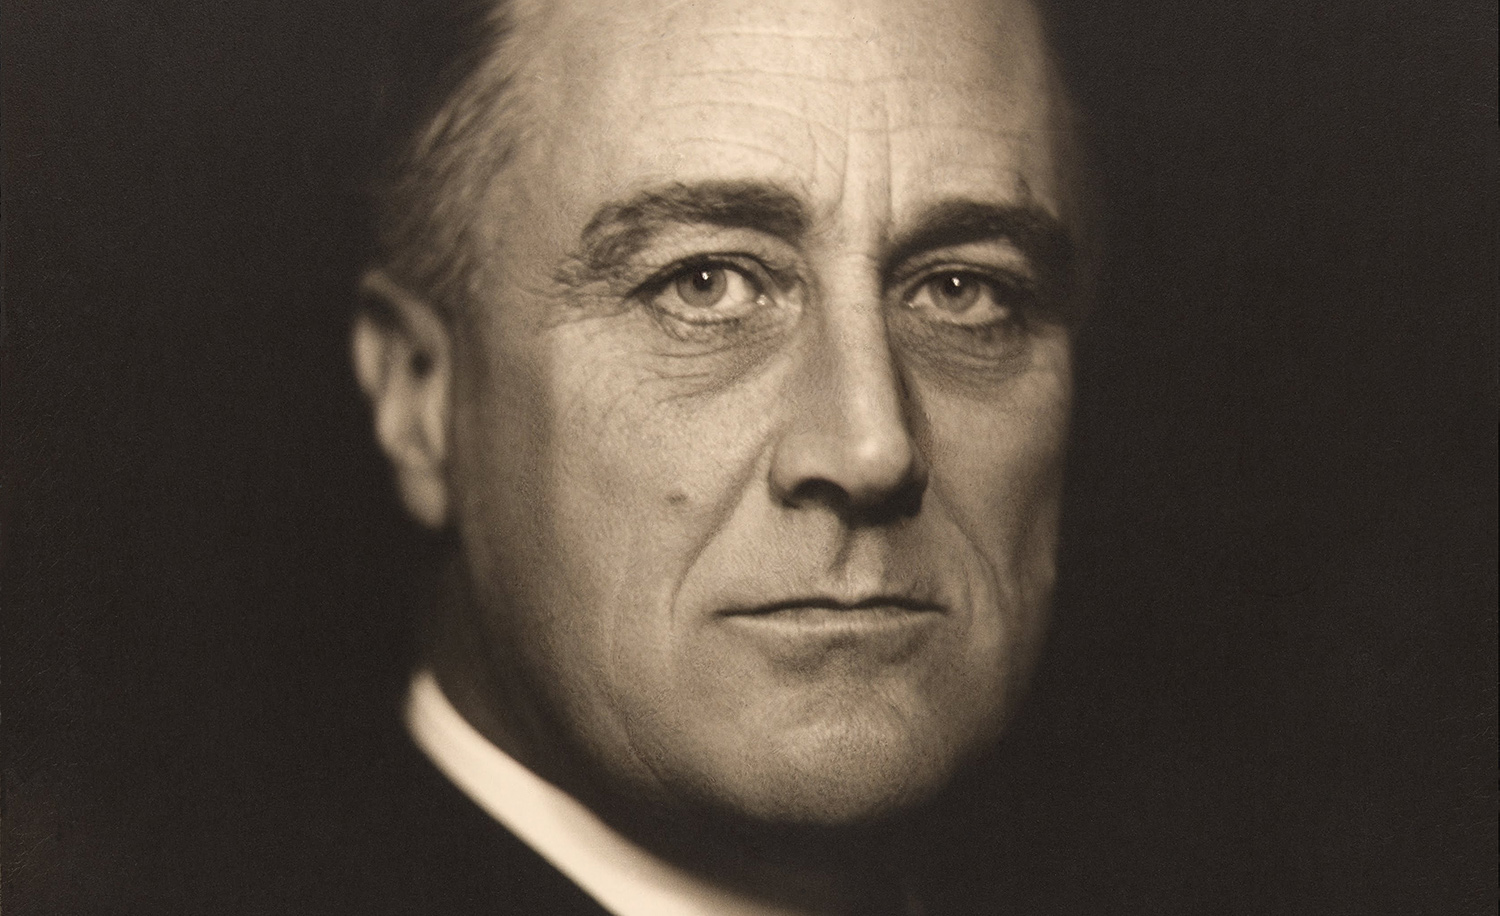 Did FDR Really Abandon the Jews of Europe?